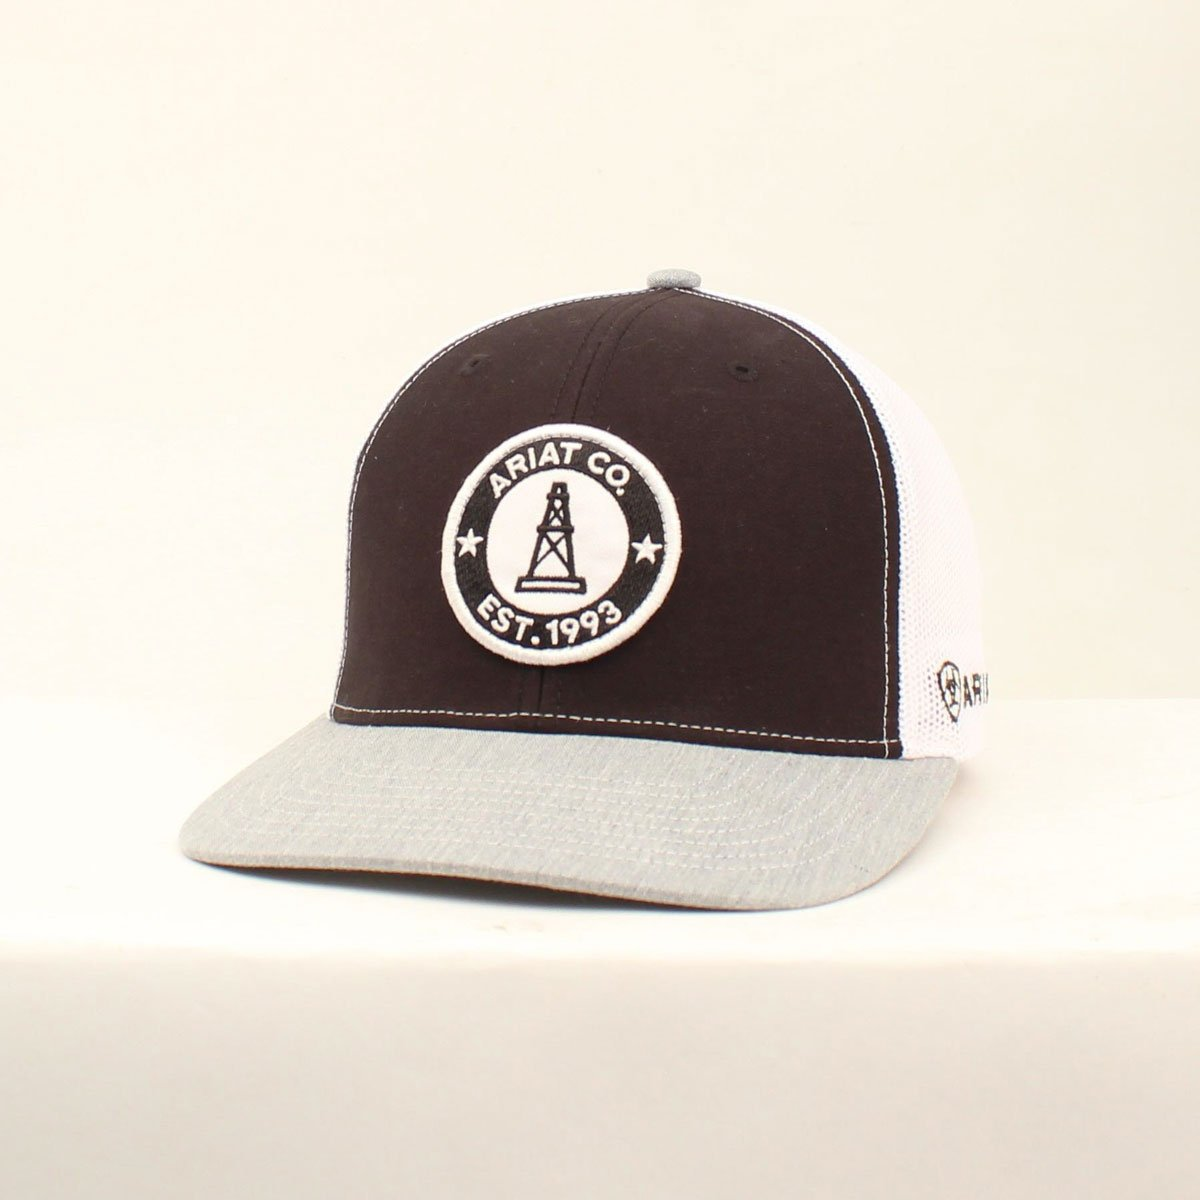 Oil Derrick Patch Hat from Ariat